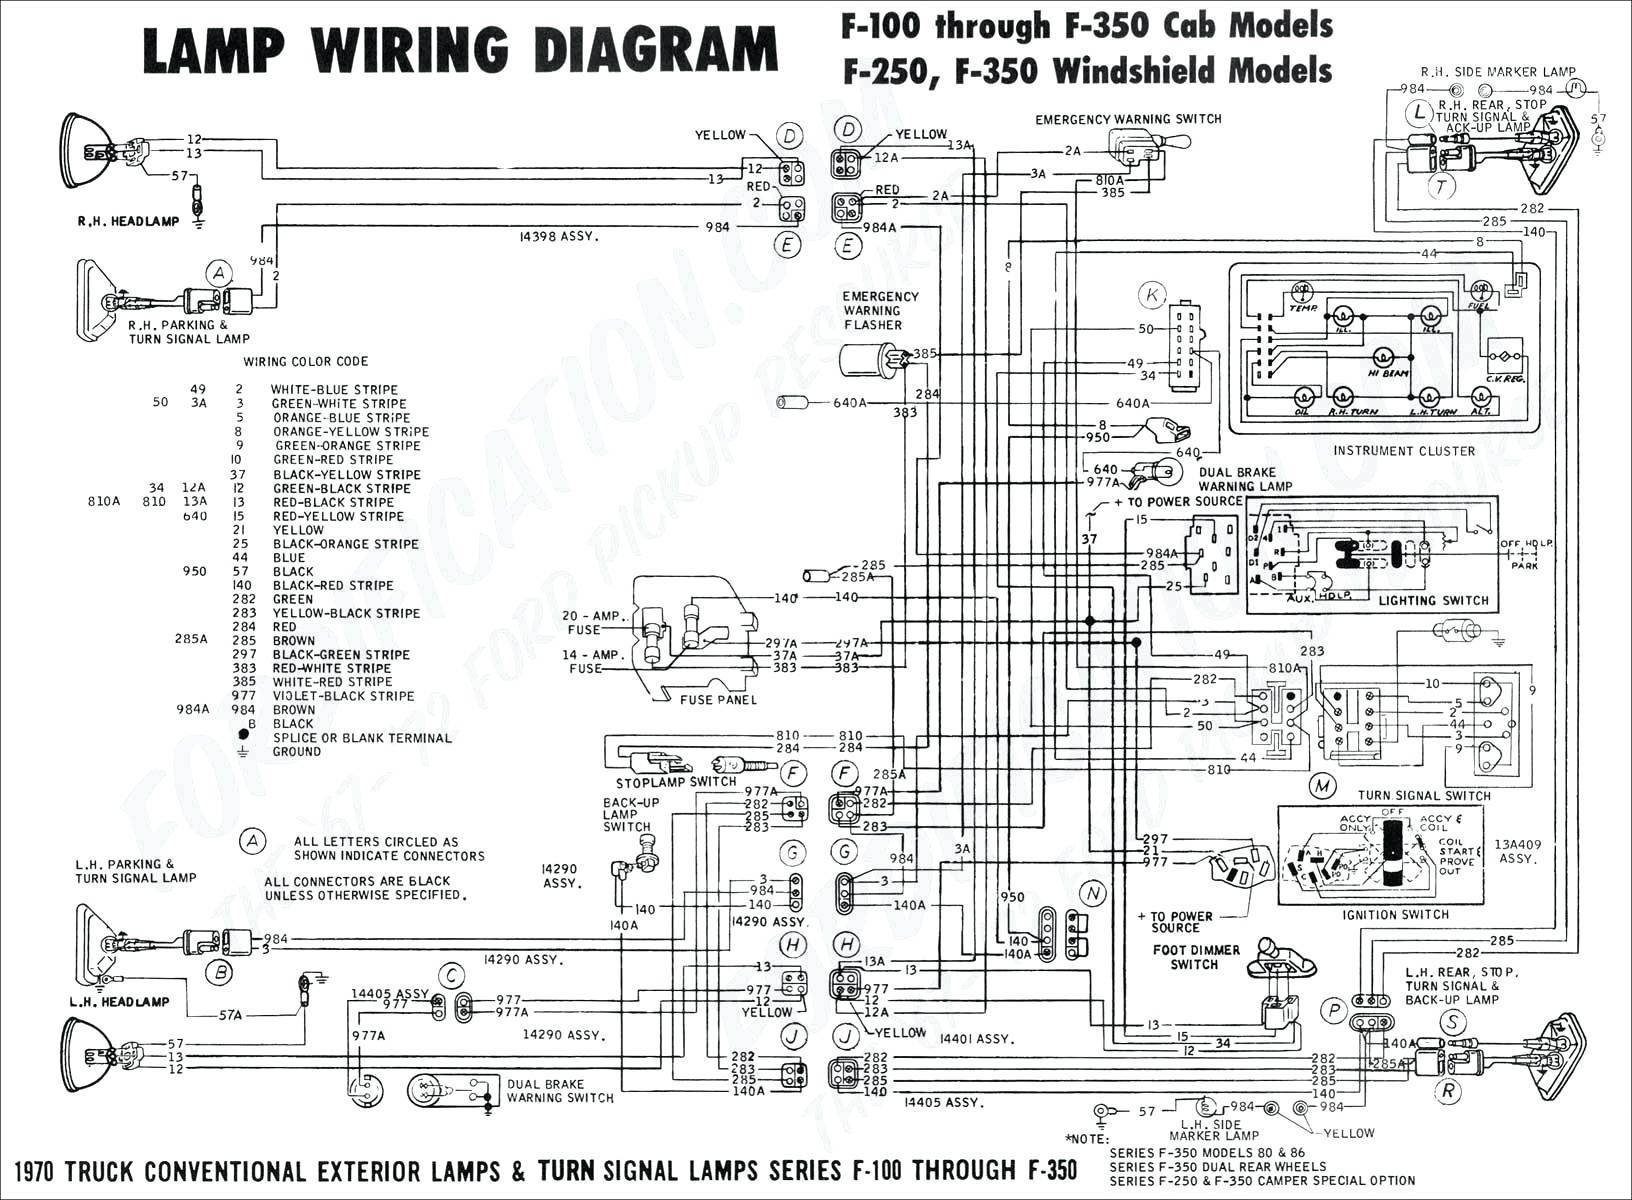 Cadillac Bose Amp Wiring Diagram Book Of Bose Amp Wiring Diagram New - Bose Amp Wiring Diagram